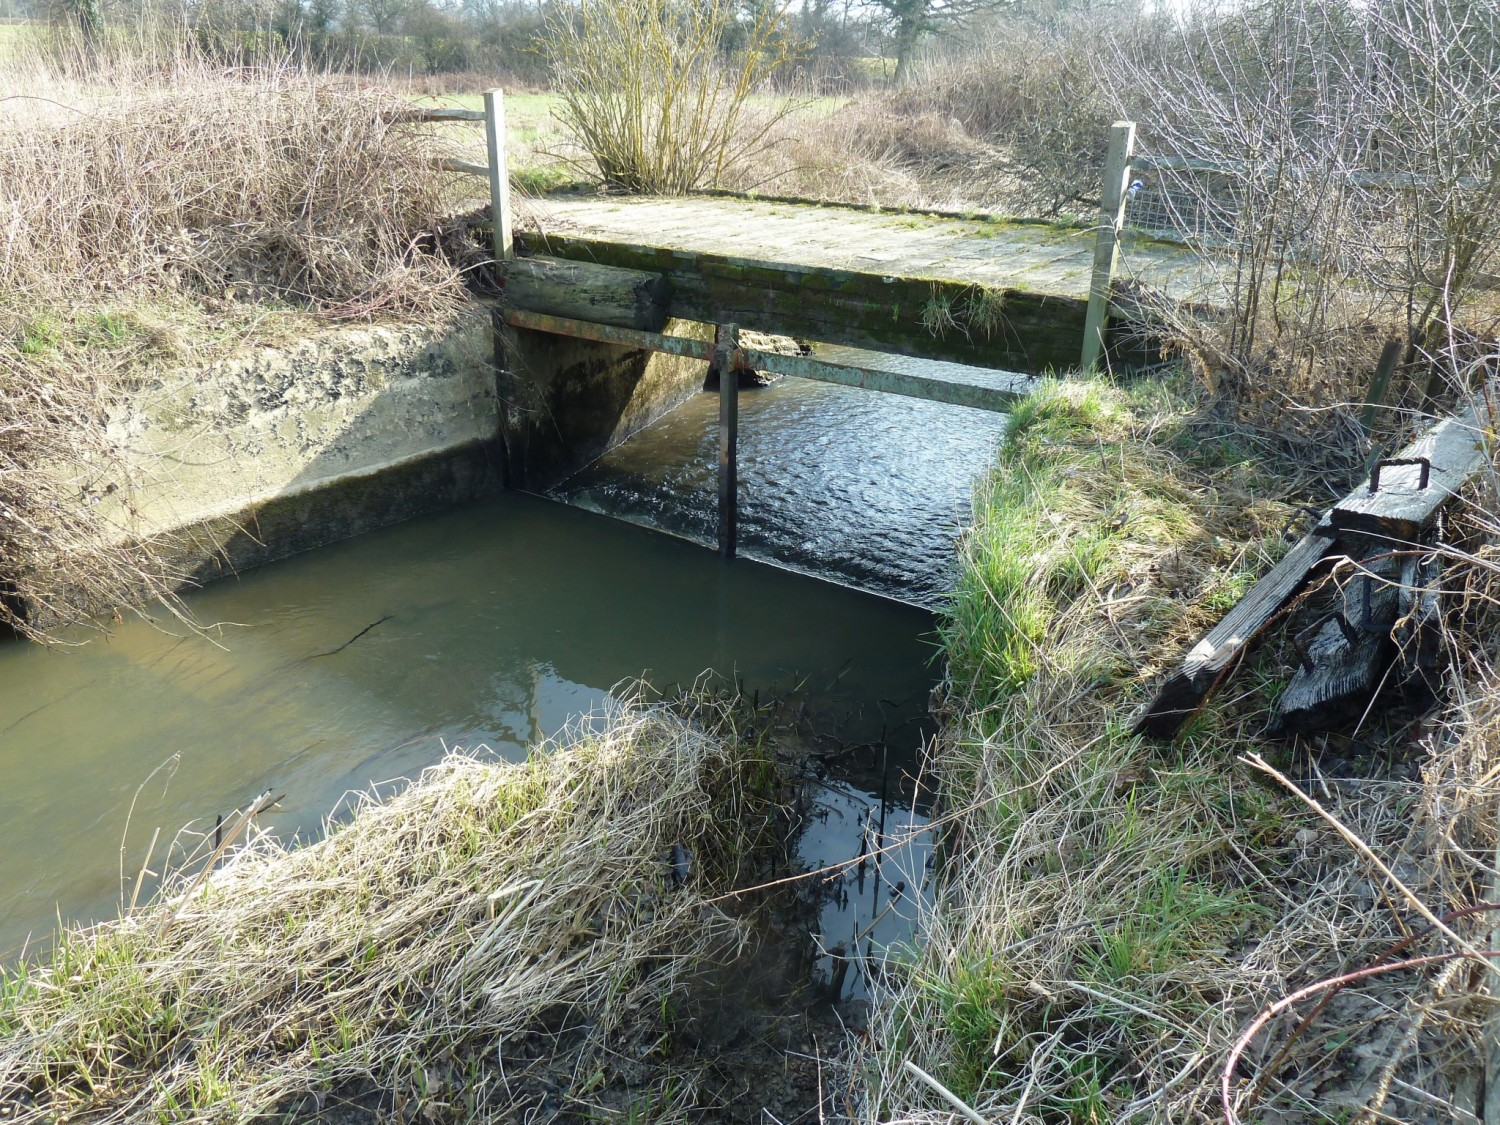 Shipley Penstock with the Boards Removed